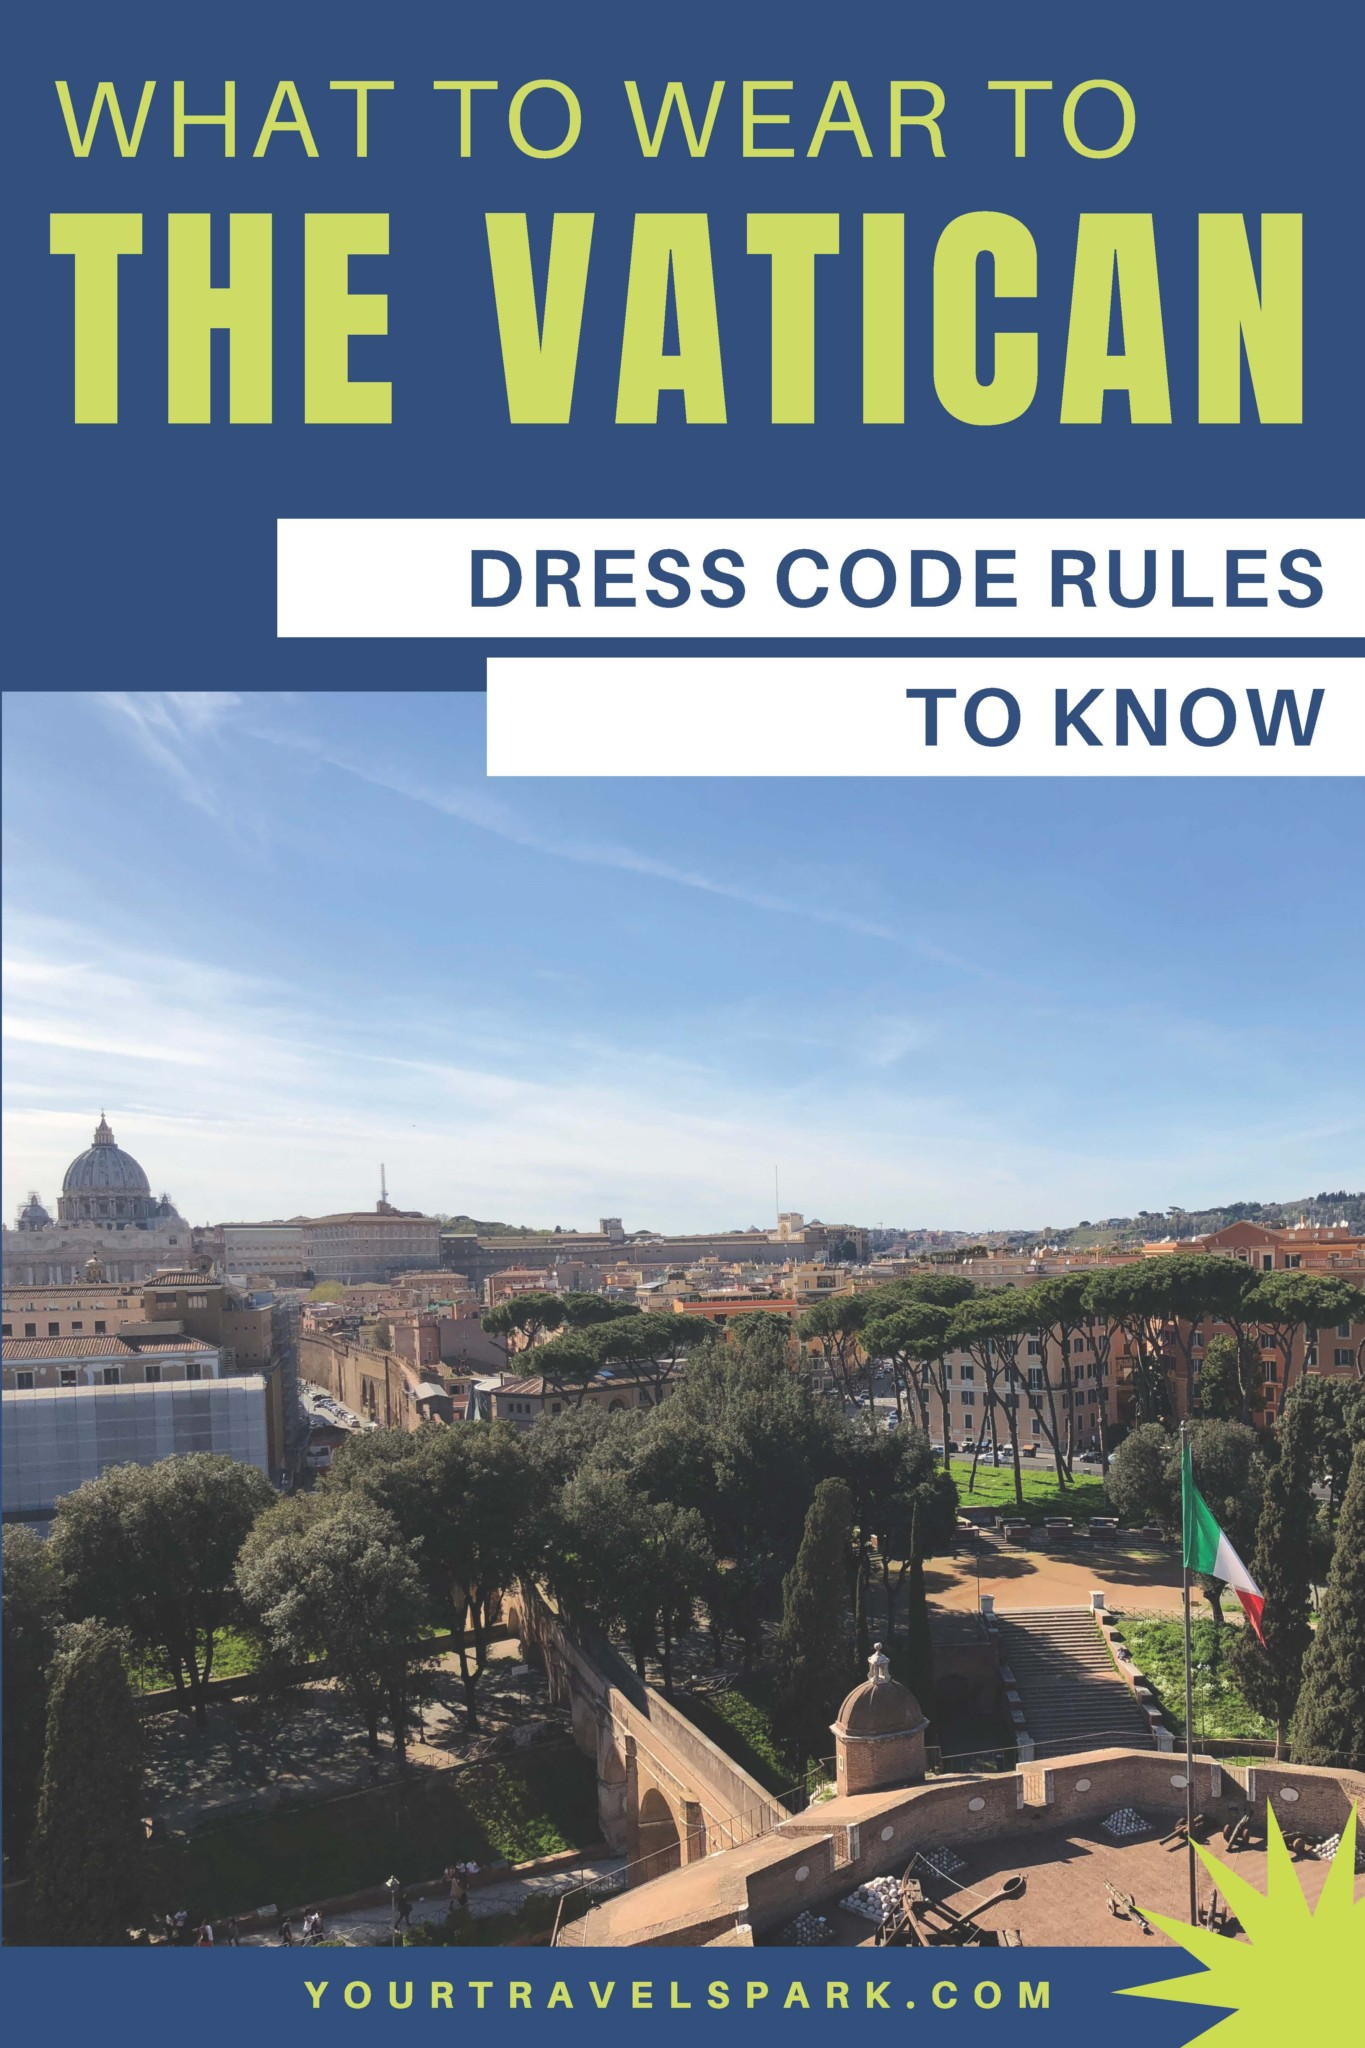 Vatican dress code rules you should know - what to wear to Vatican City in Rome, Italy.